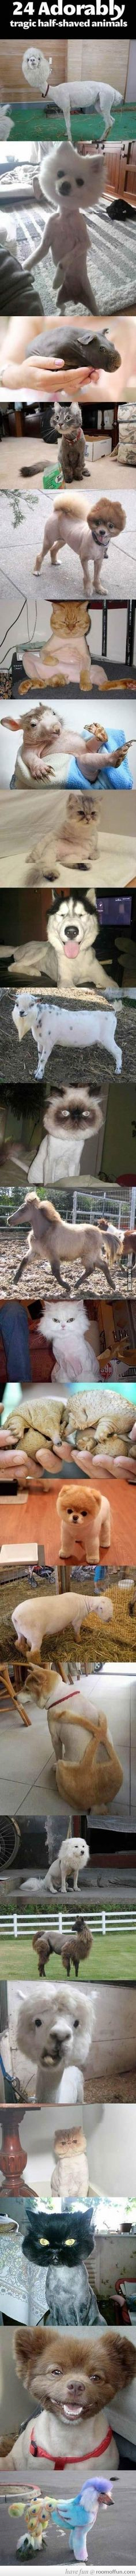 24 Adorably Tragic Half-Shaved Animals. Oh my word...hah